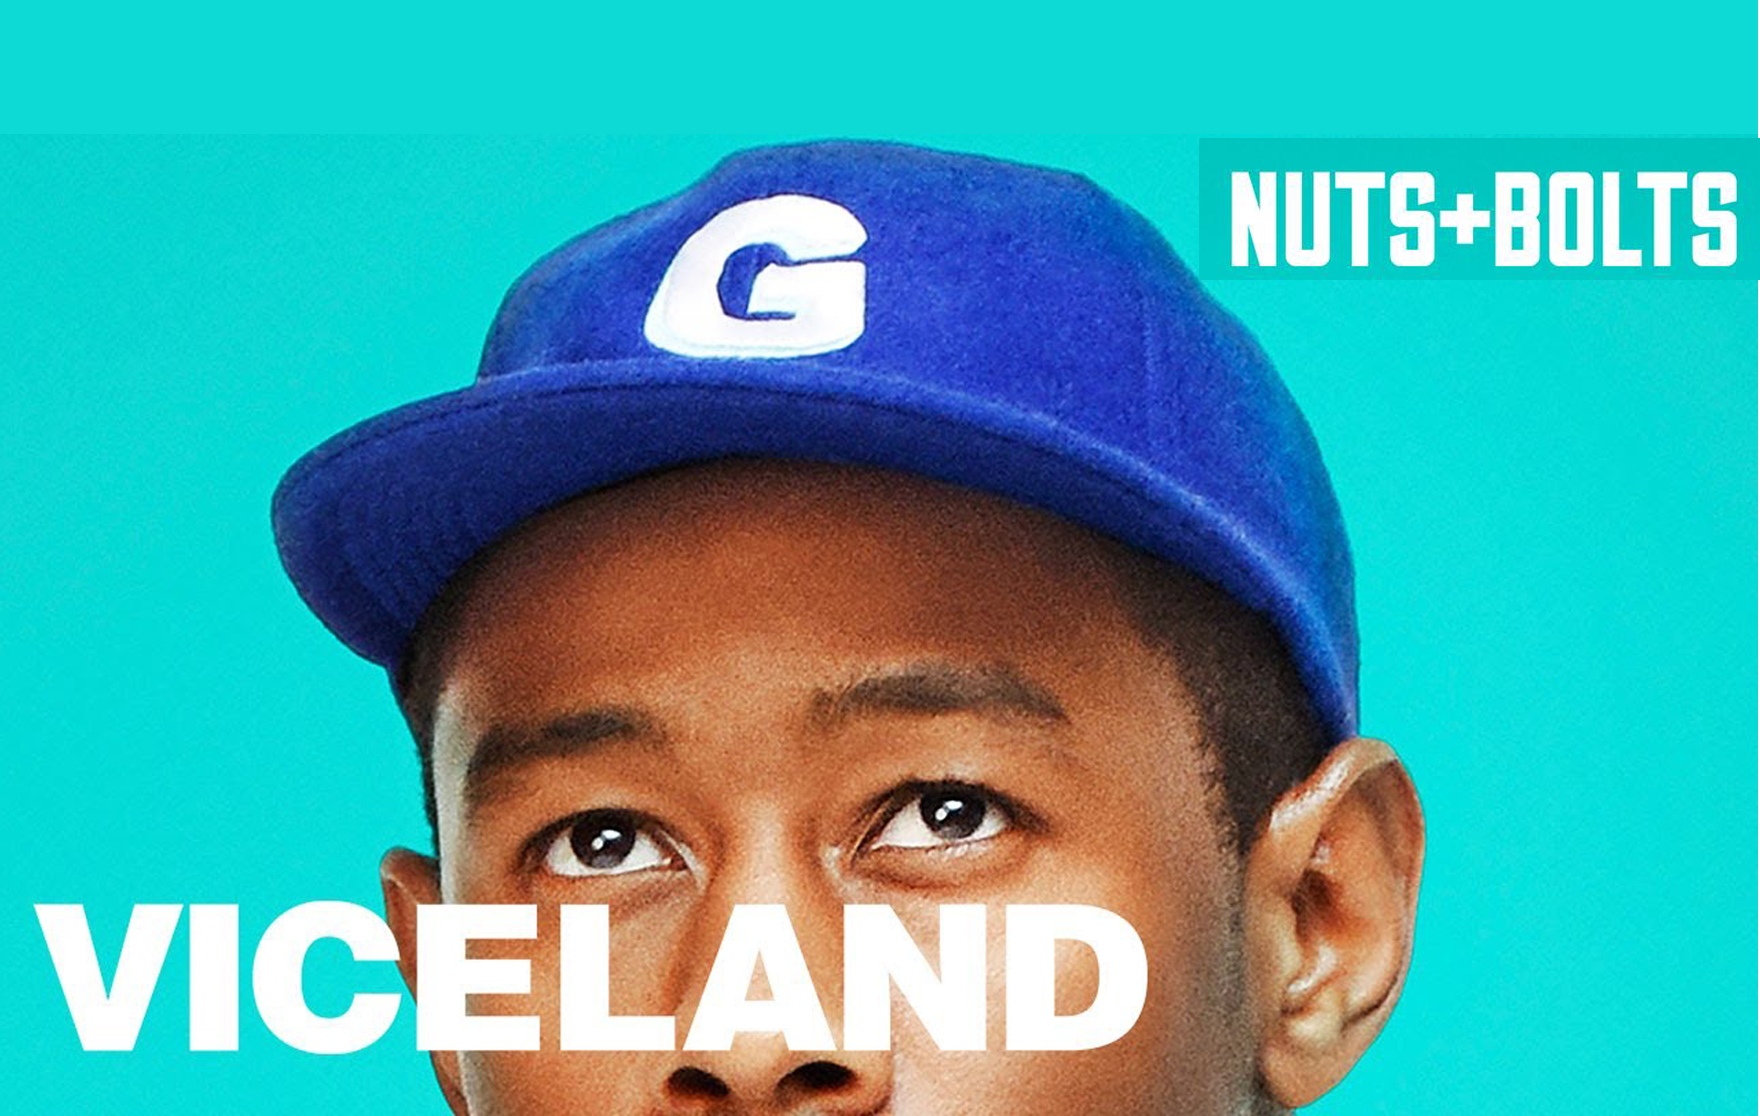 Nuts+Bolts_Viceland_1.png (1)